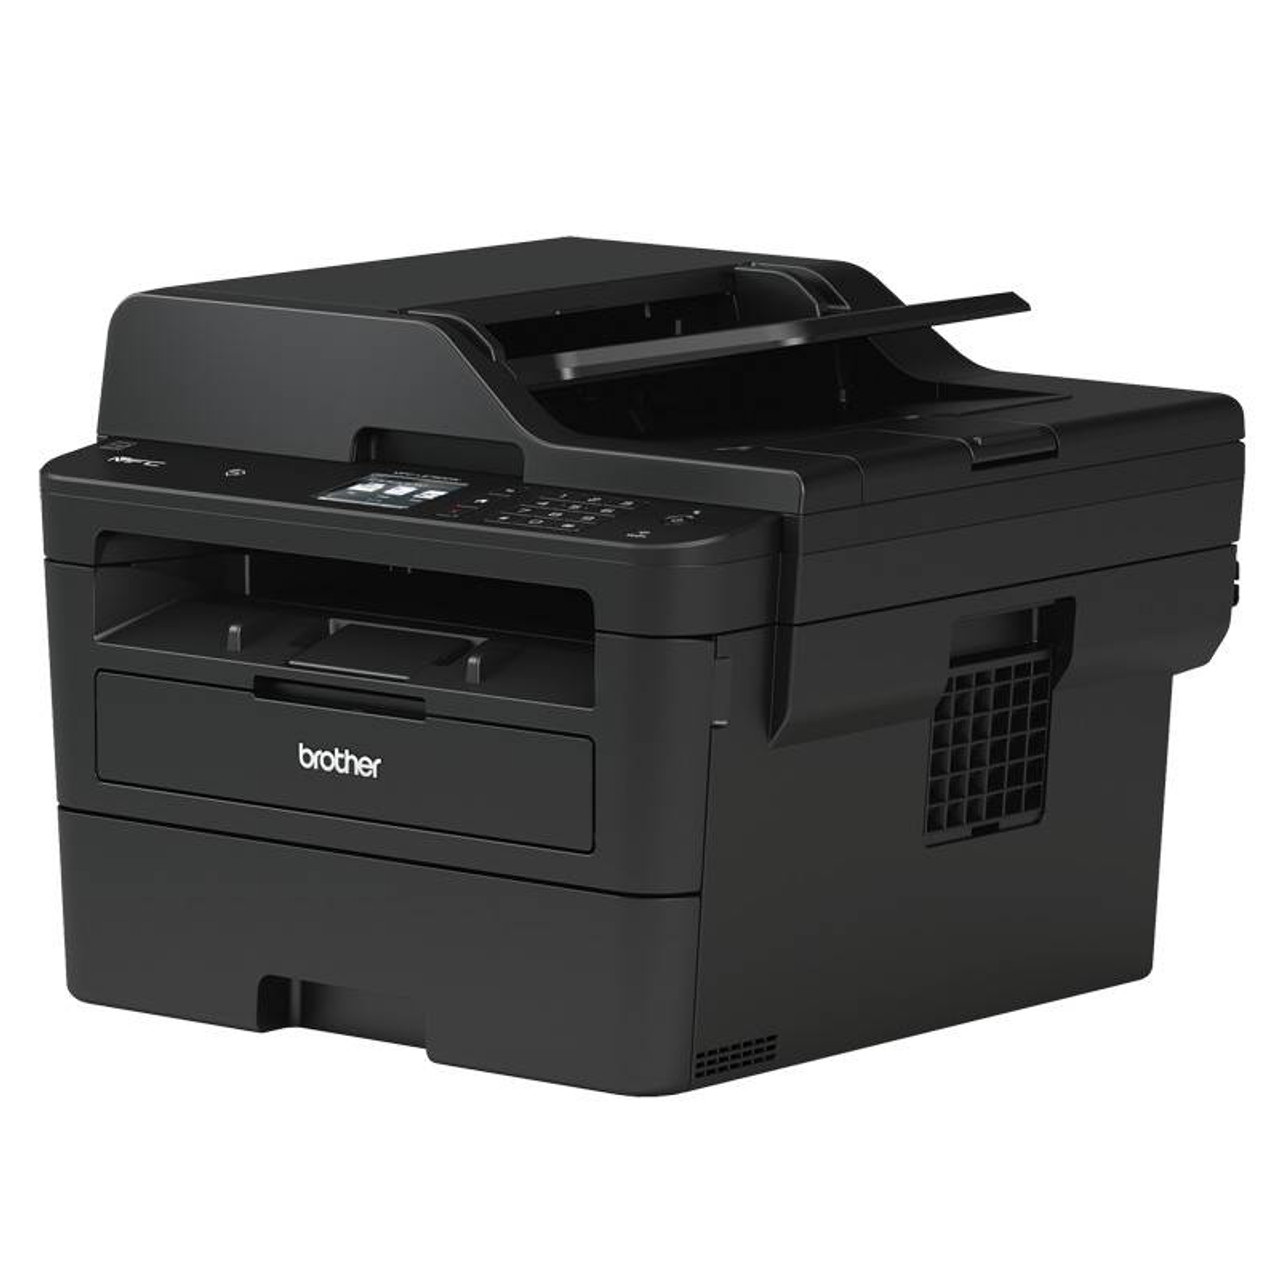 Product image for Brother MFC-L2750DW Monochrome Laser Printer   CX Computer Superstore